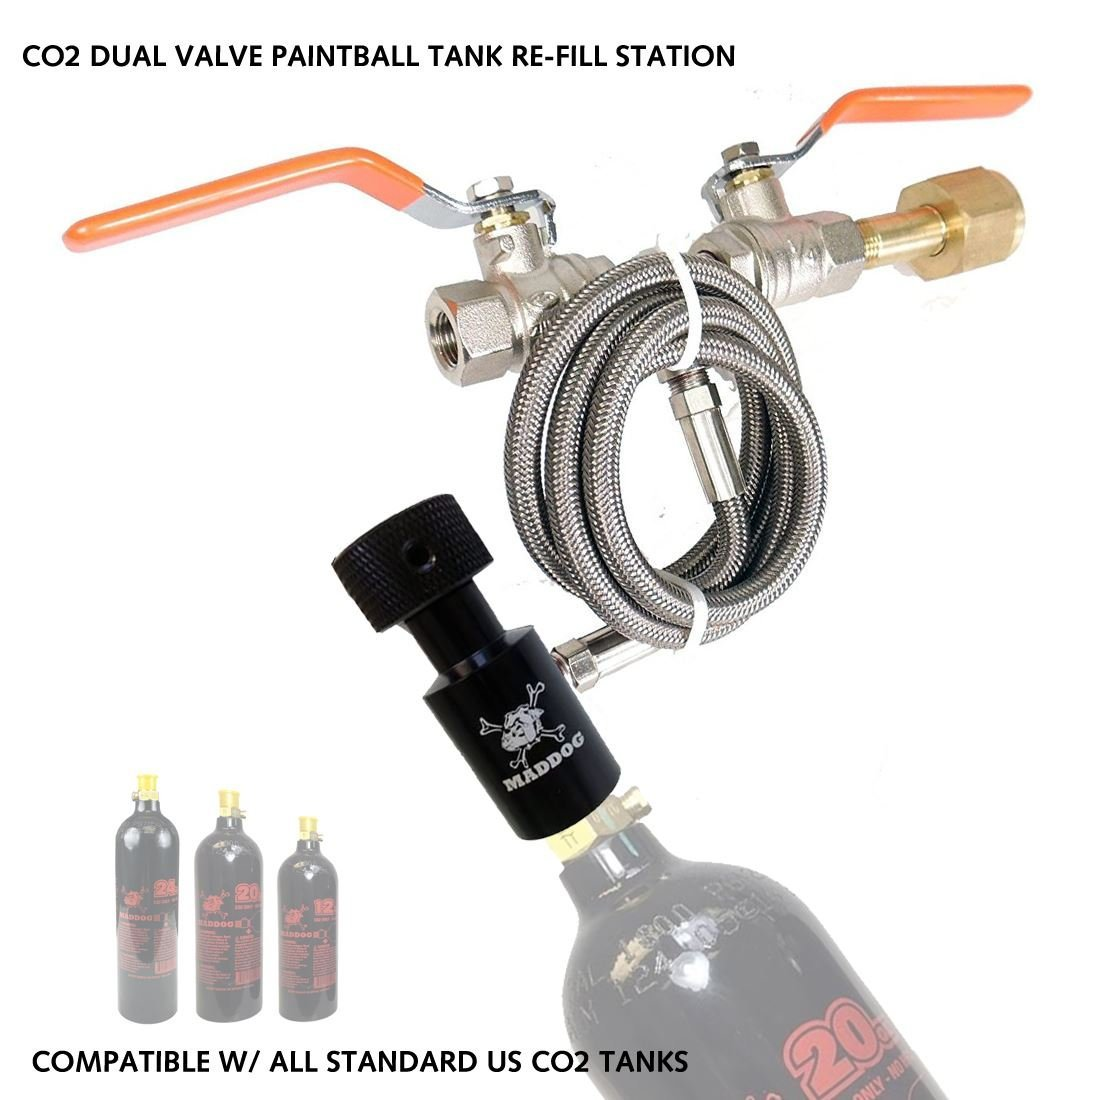 MAddog MD-2050-CO2DUALFILL Paintball Co2 Fill Station - Dual Valve Bottle Refill Station for 9oz, 12oz, 16oz, 20oz + 24oz Co2 Tanks, Black